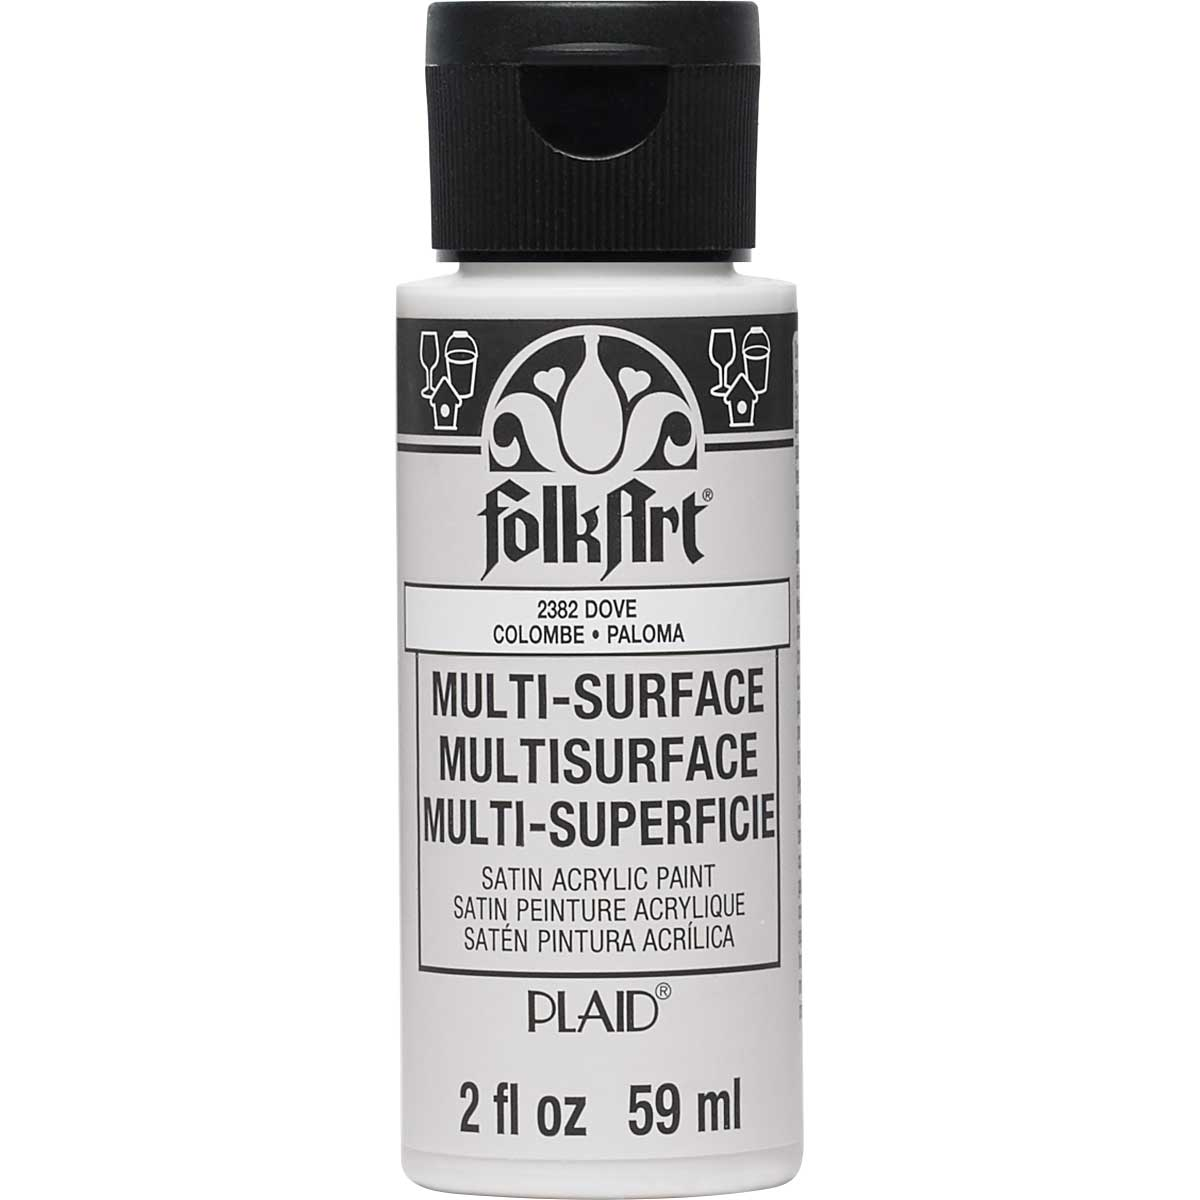 FolkArt ® Multi-Surface Satin Acrylic Paints - Dove, 2 oz.